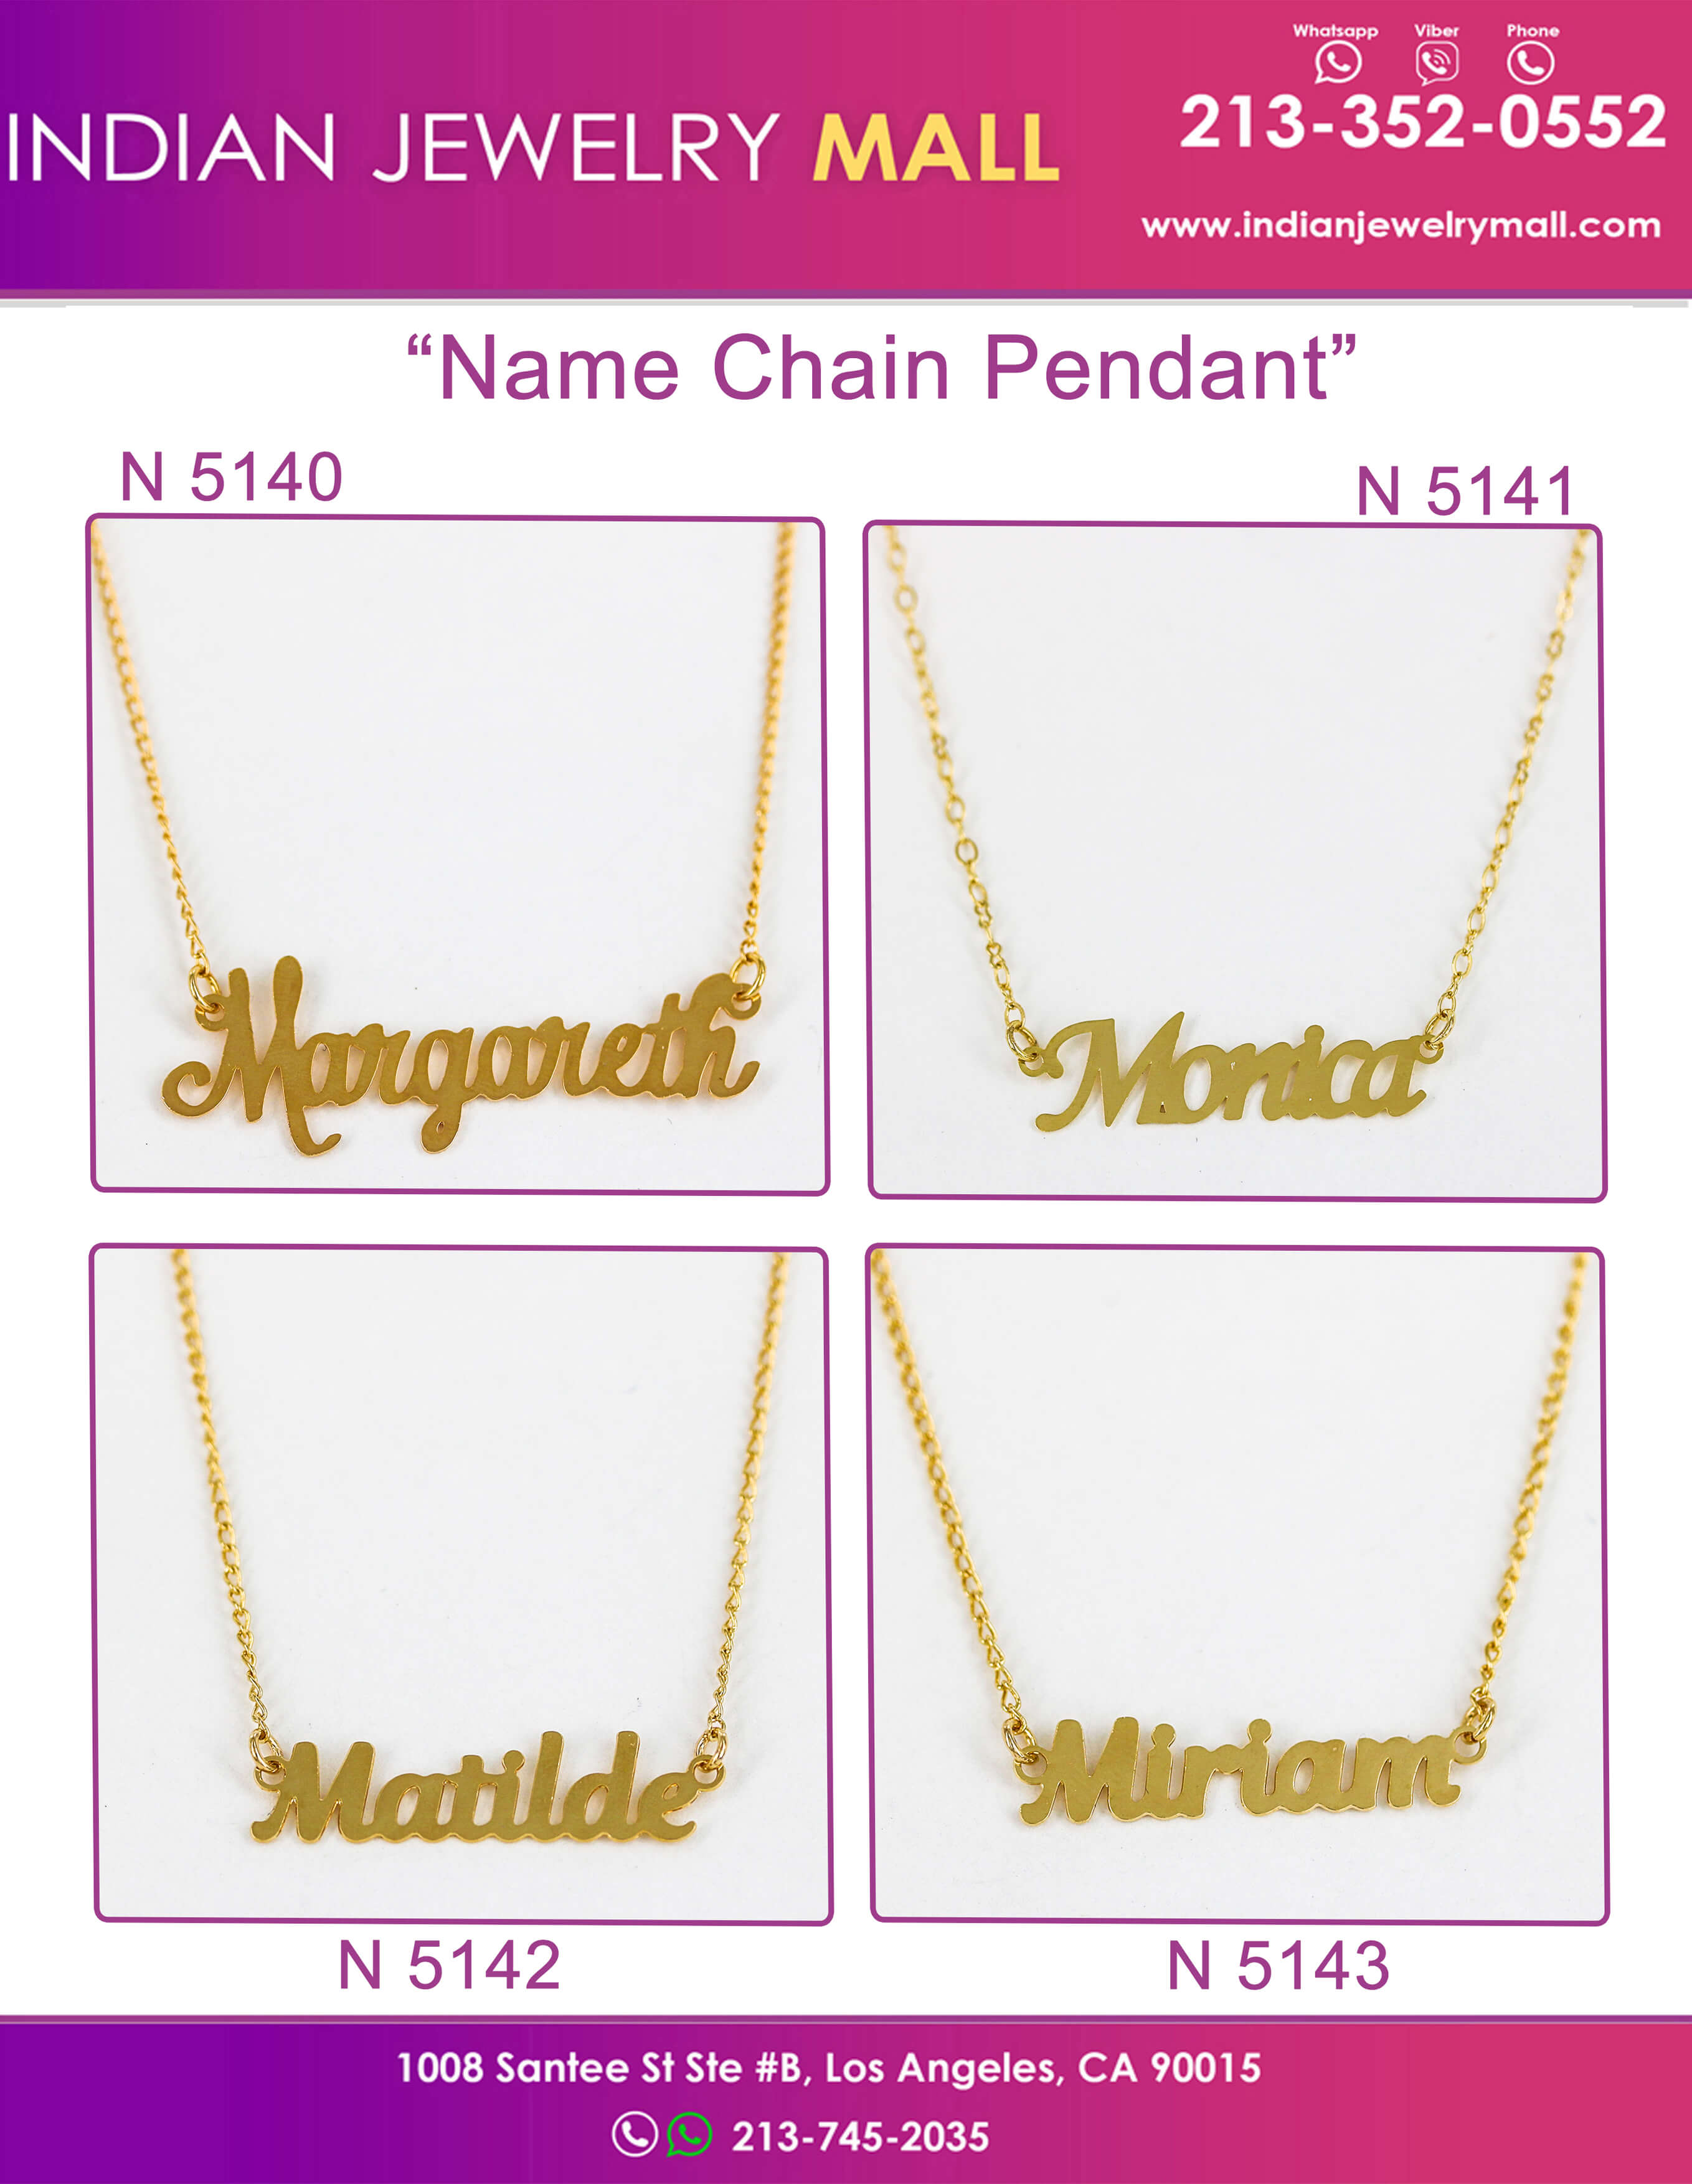 Gold Plated Name Chain Pendants - Oro Laminado Indian Jewelry Mall